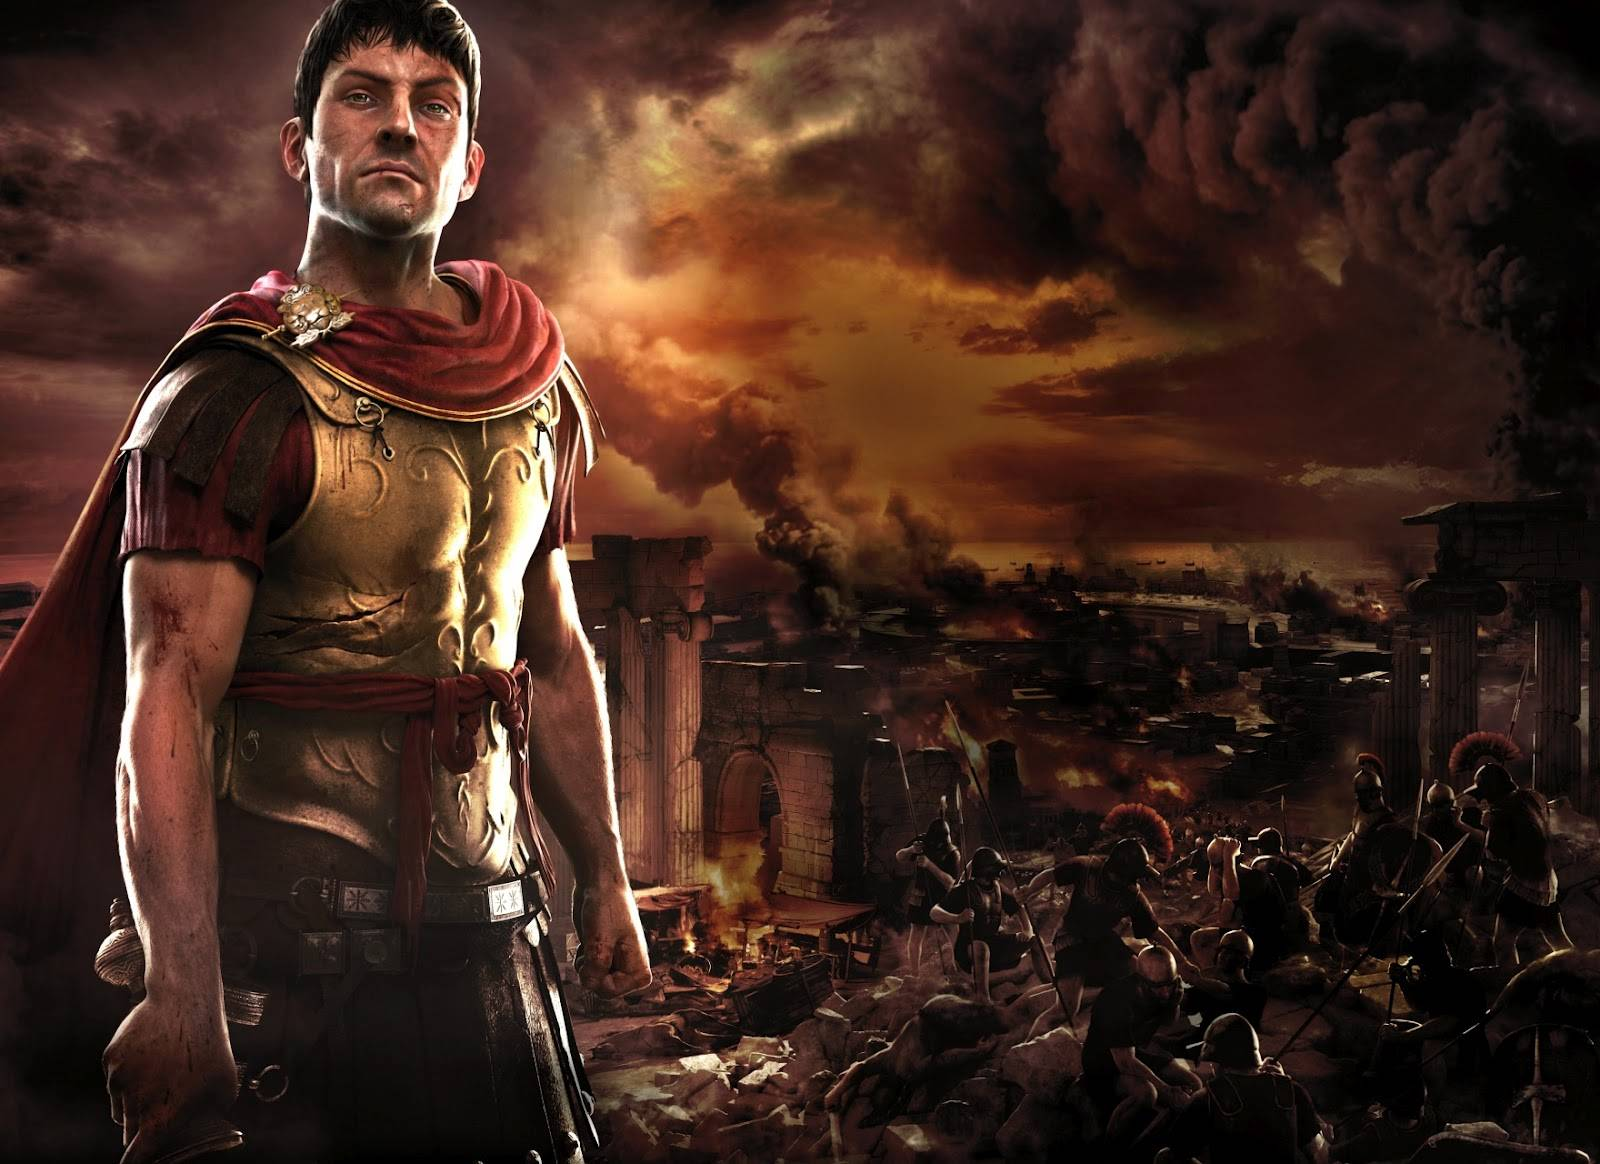 Total War Rome 2 Wallpapers in HD GamingBoltcom Video Game News 1600x1164